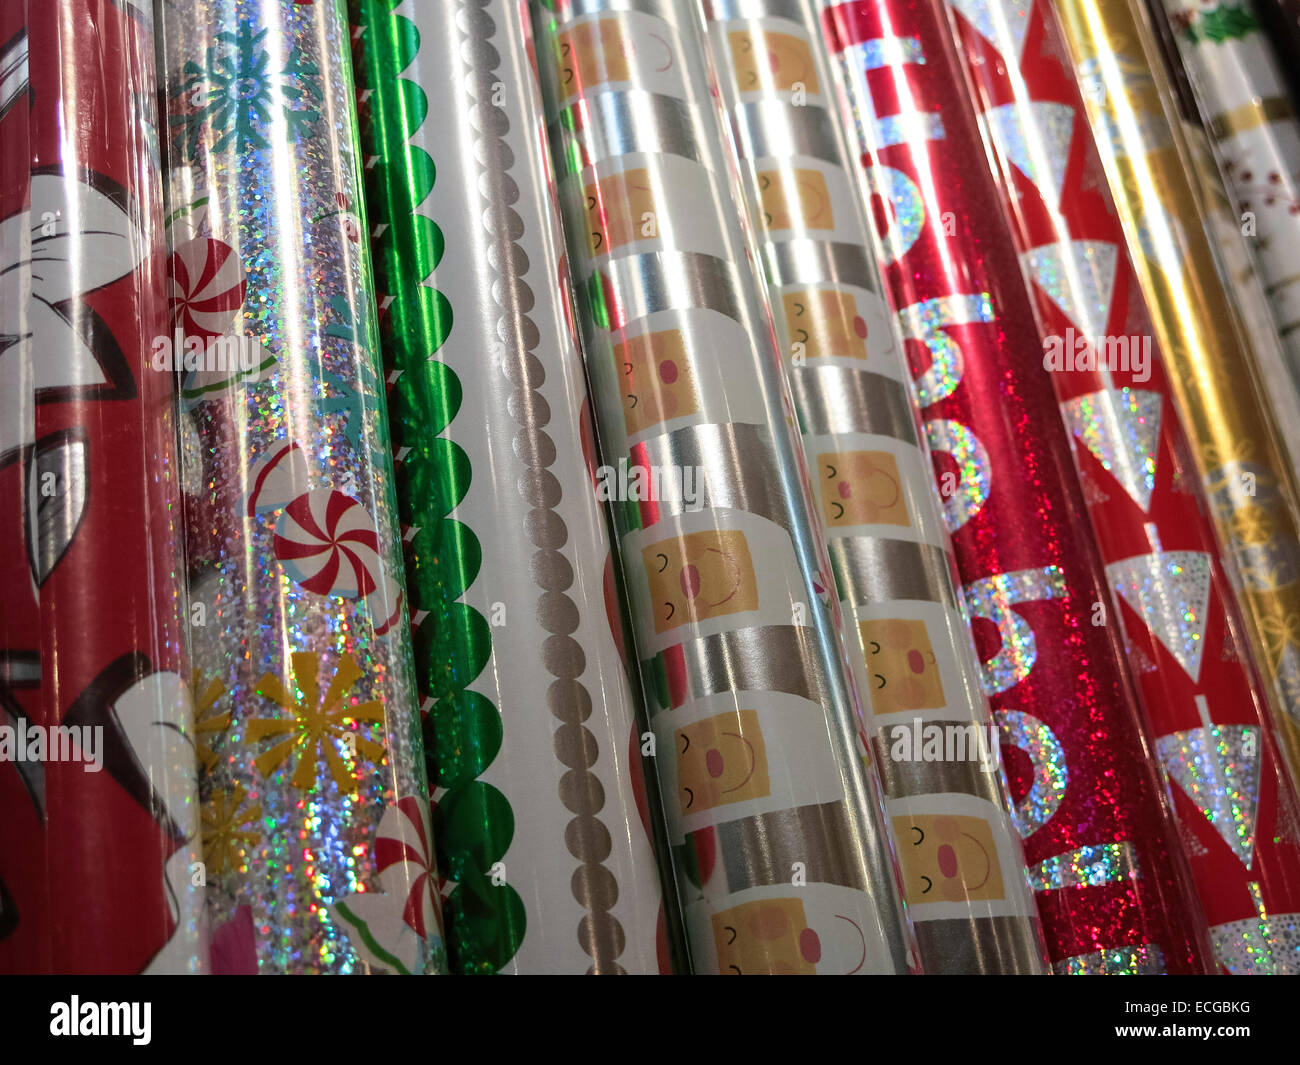 Christmas Holiday Gift Wrapping Display, Papyrus Store, NYC Stock ...